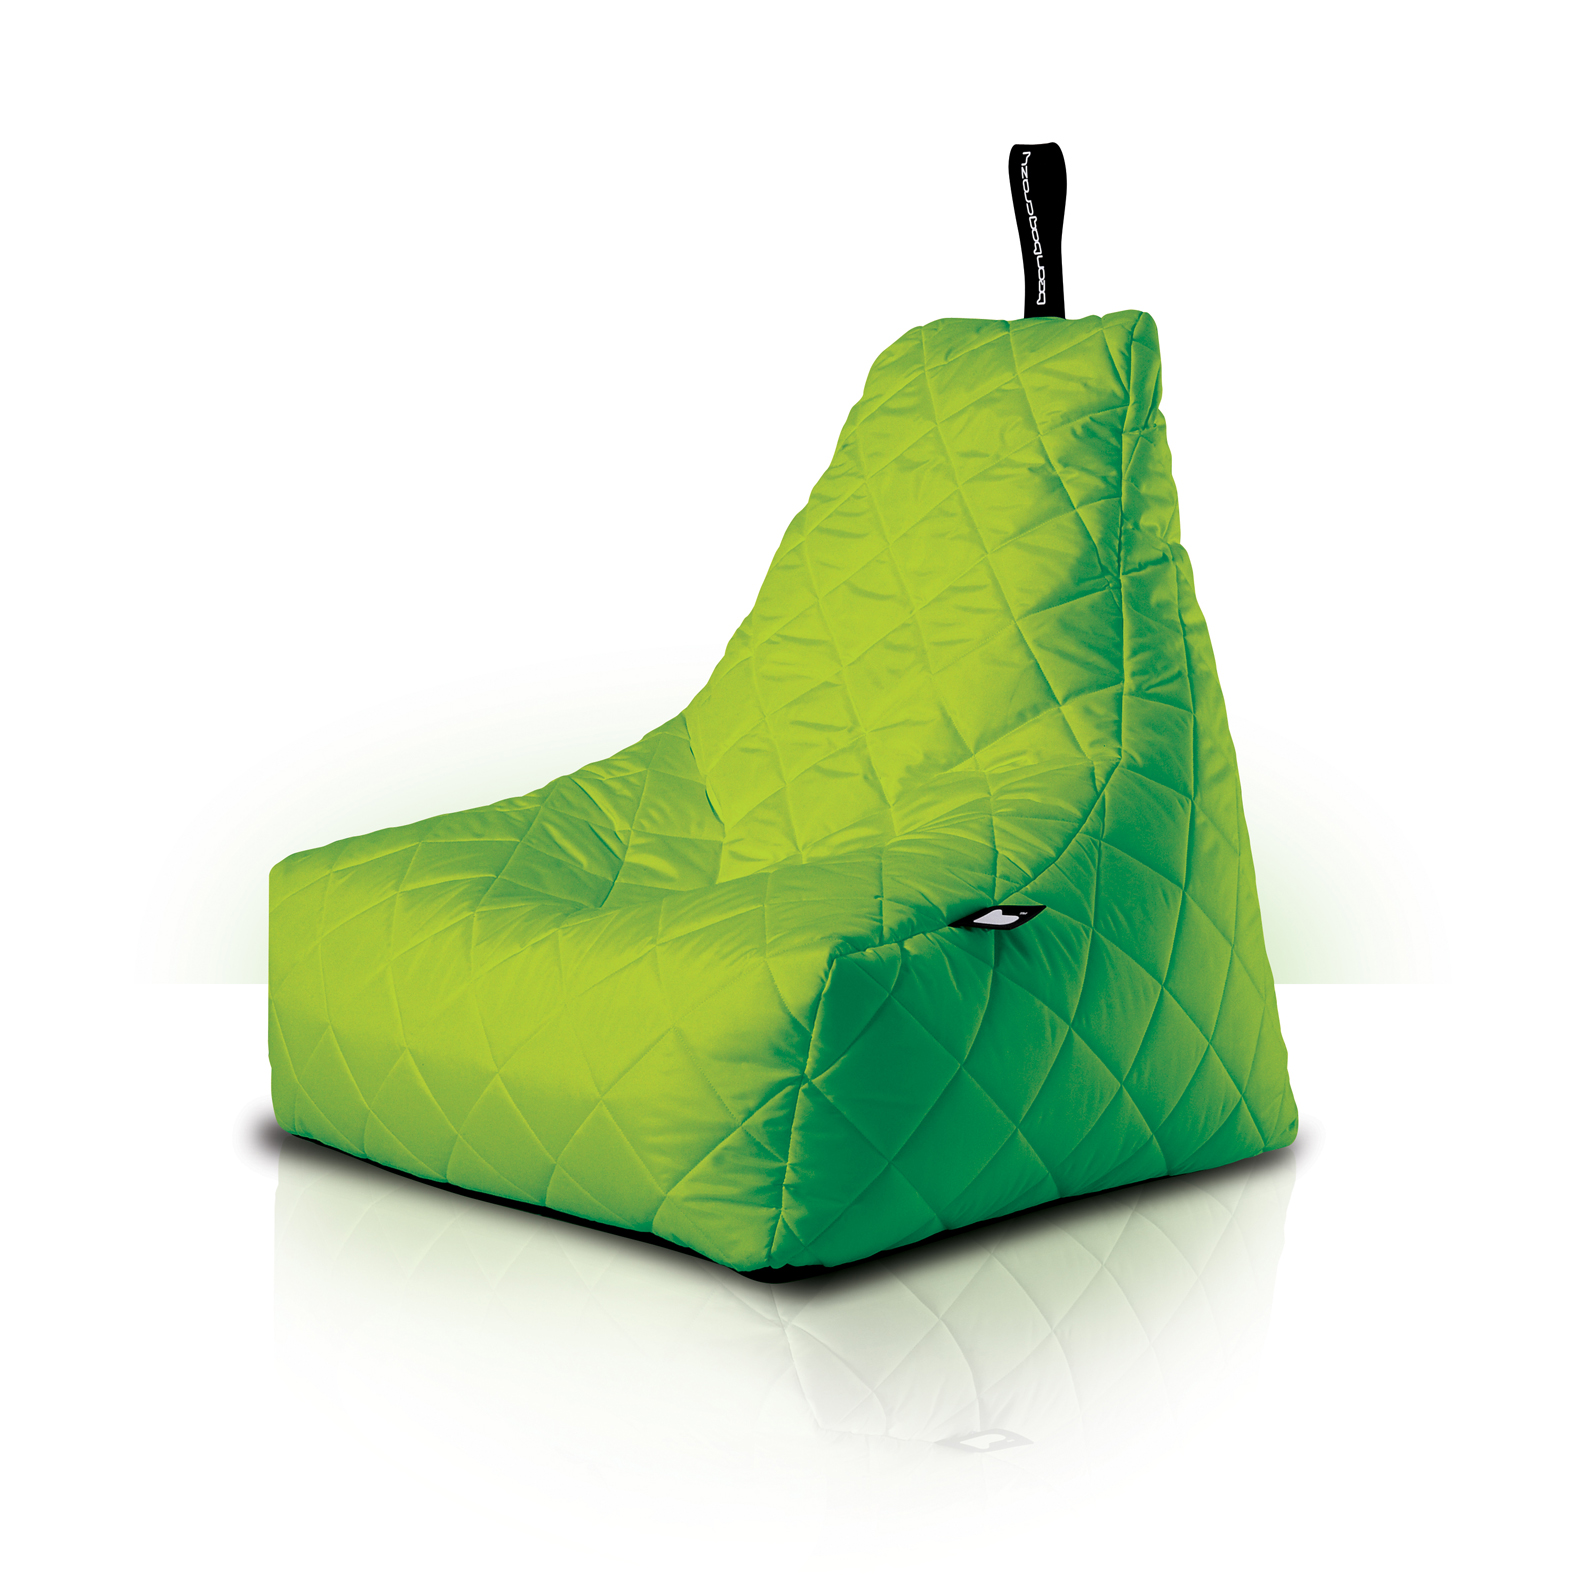 MightyB Outdoor Quilted Bean Bag Lime Green